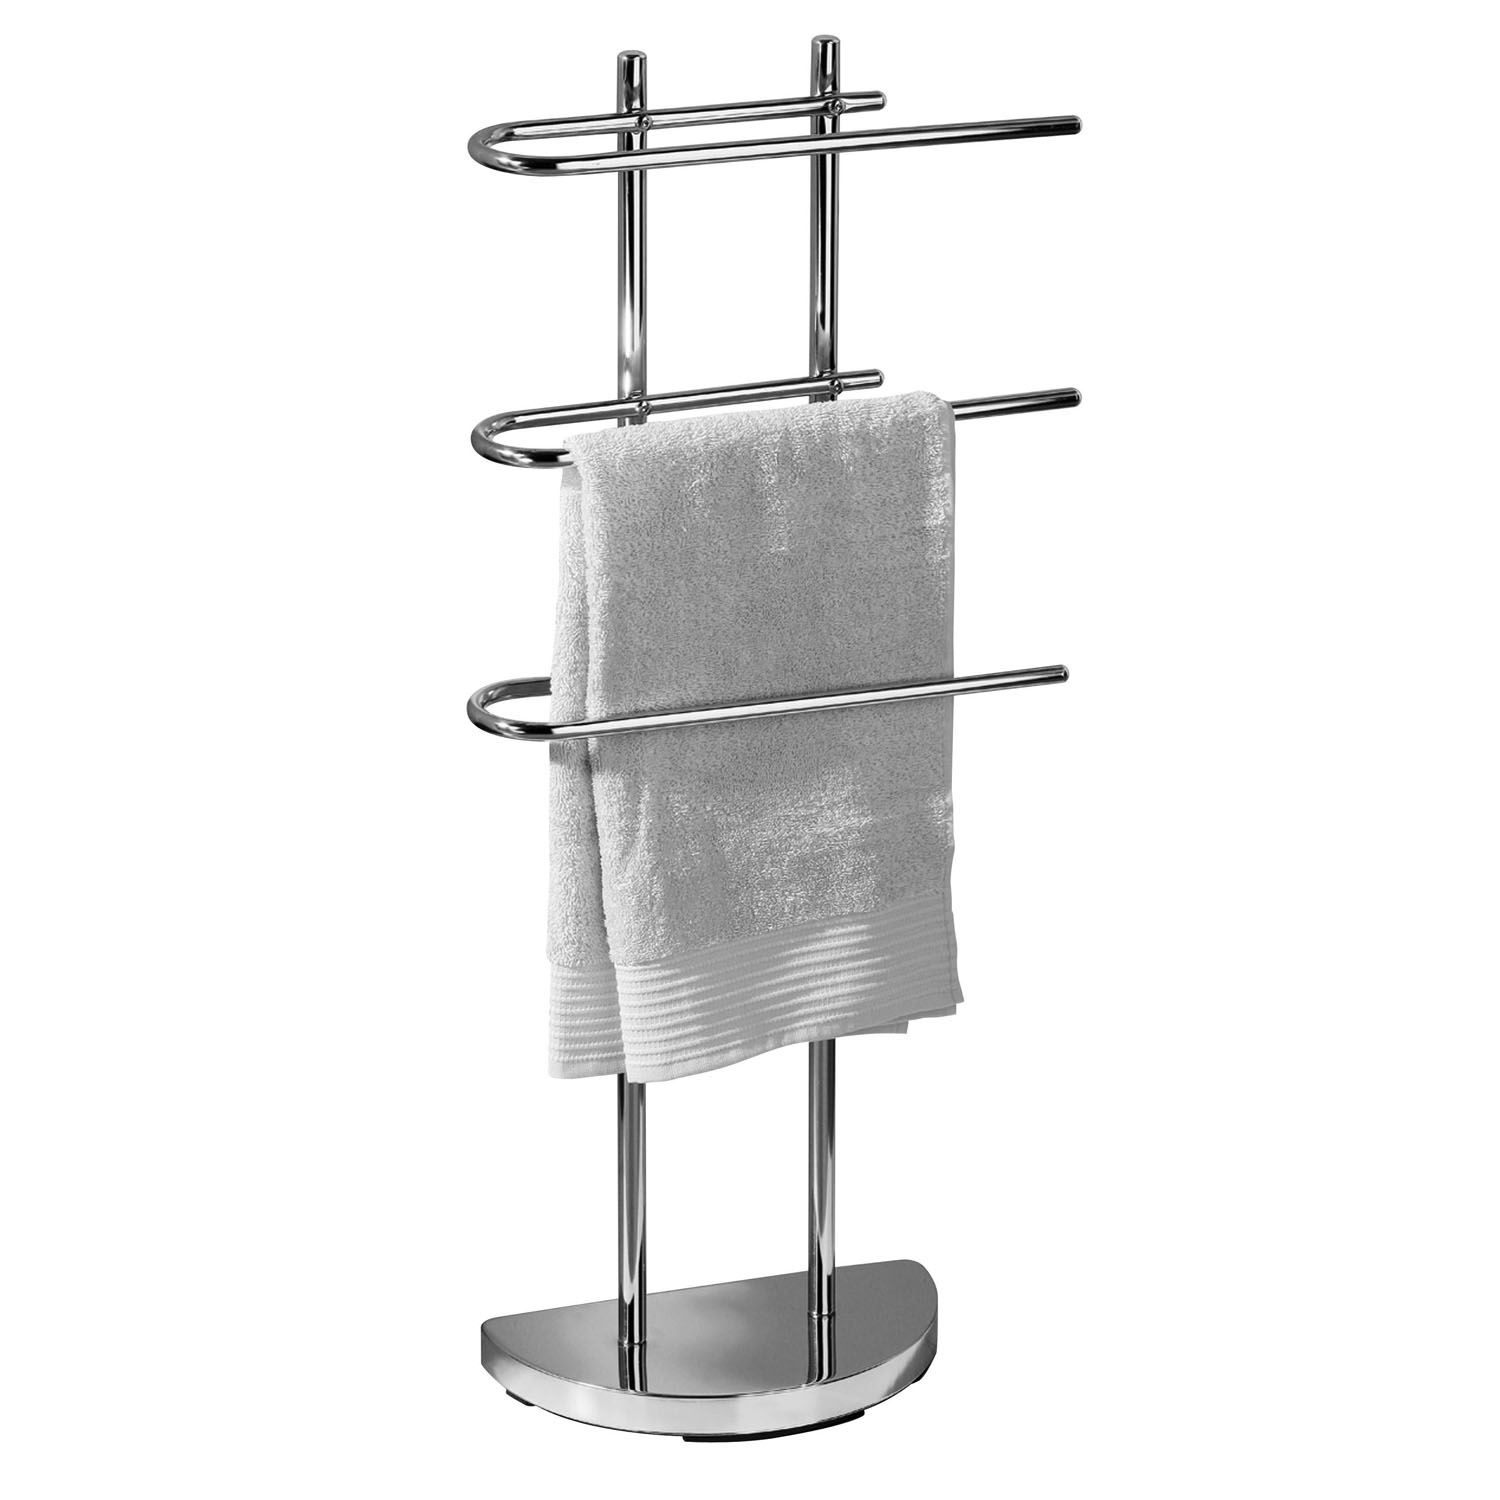 Bathroom Towel Stand Details About Free Standing 3 Arm Towel Rail Chrome Bathroom Towel Holder Rail Rack Stand New